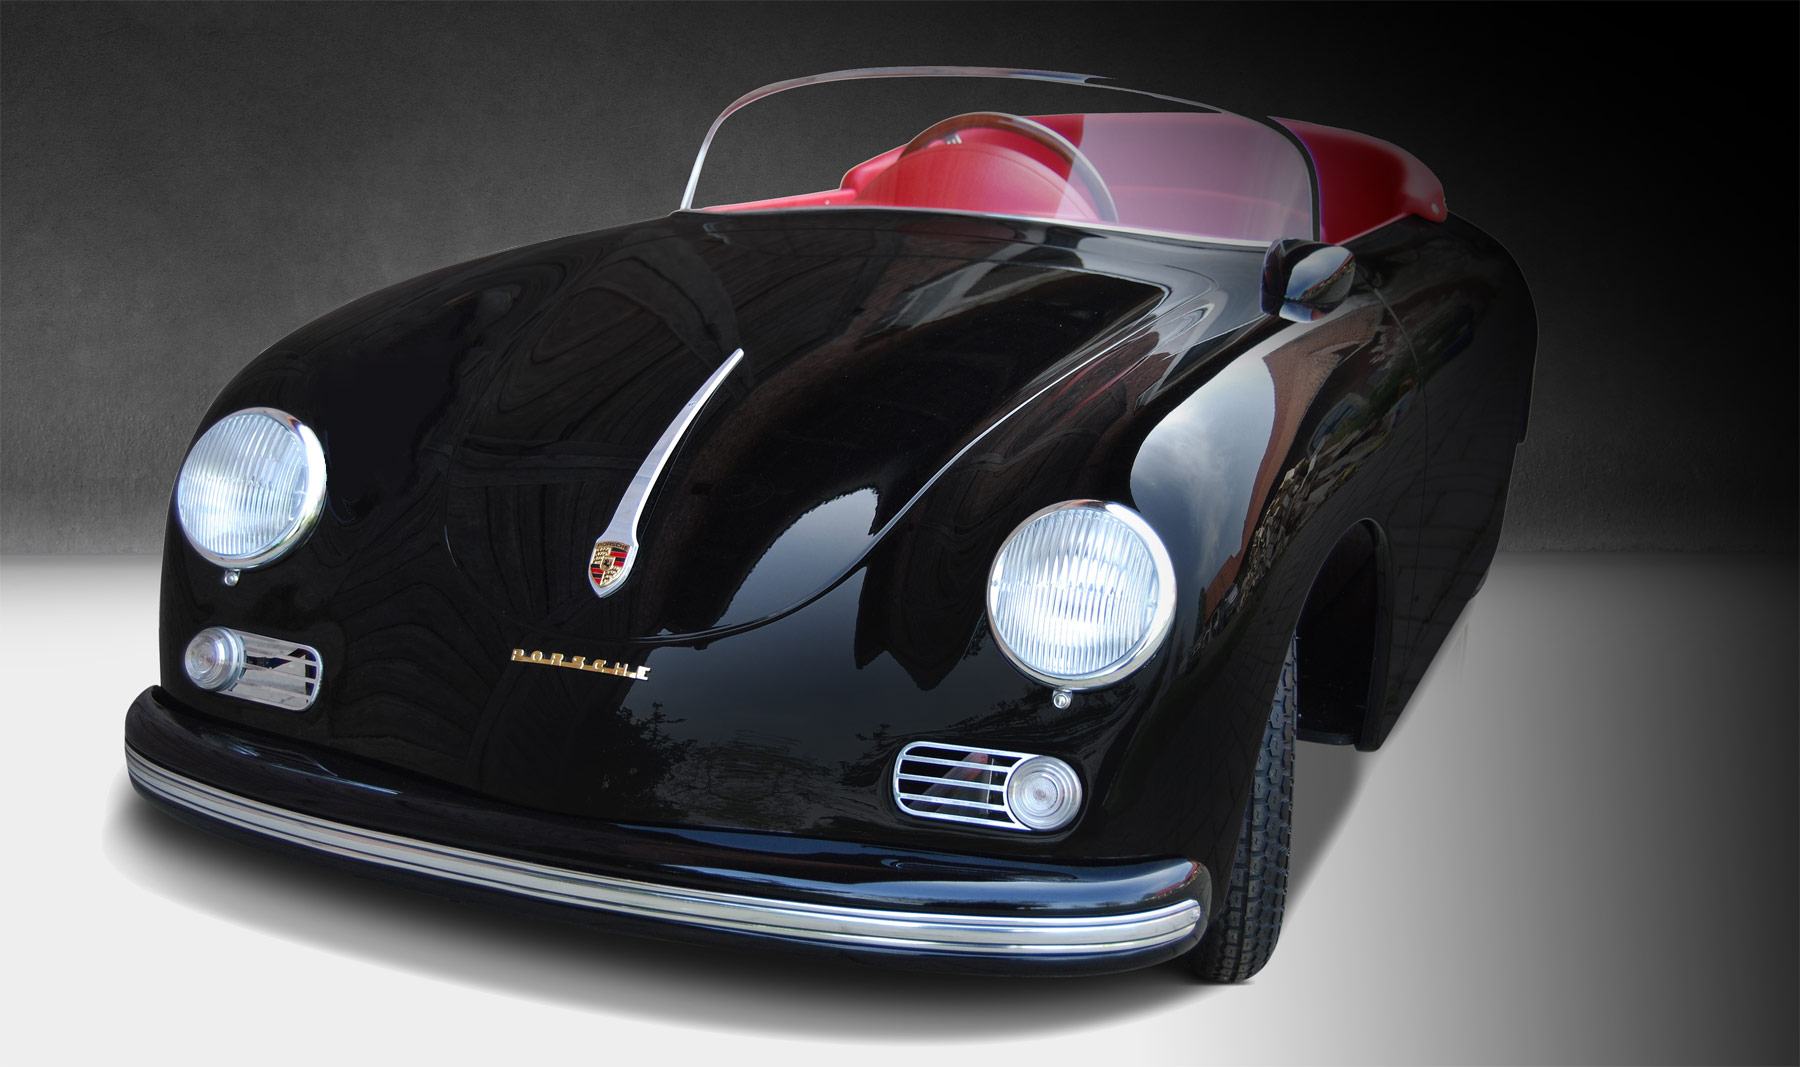 Pocket Classics Drives Forward With New Porsche 356 Speedster